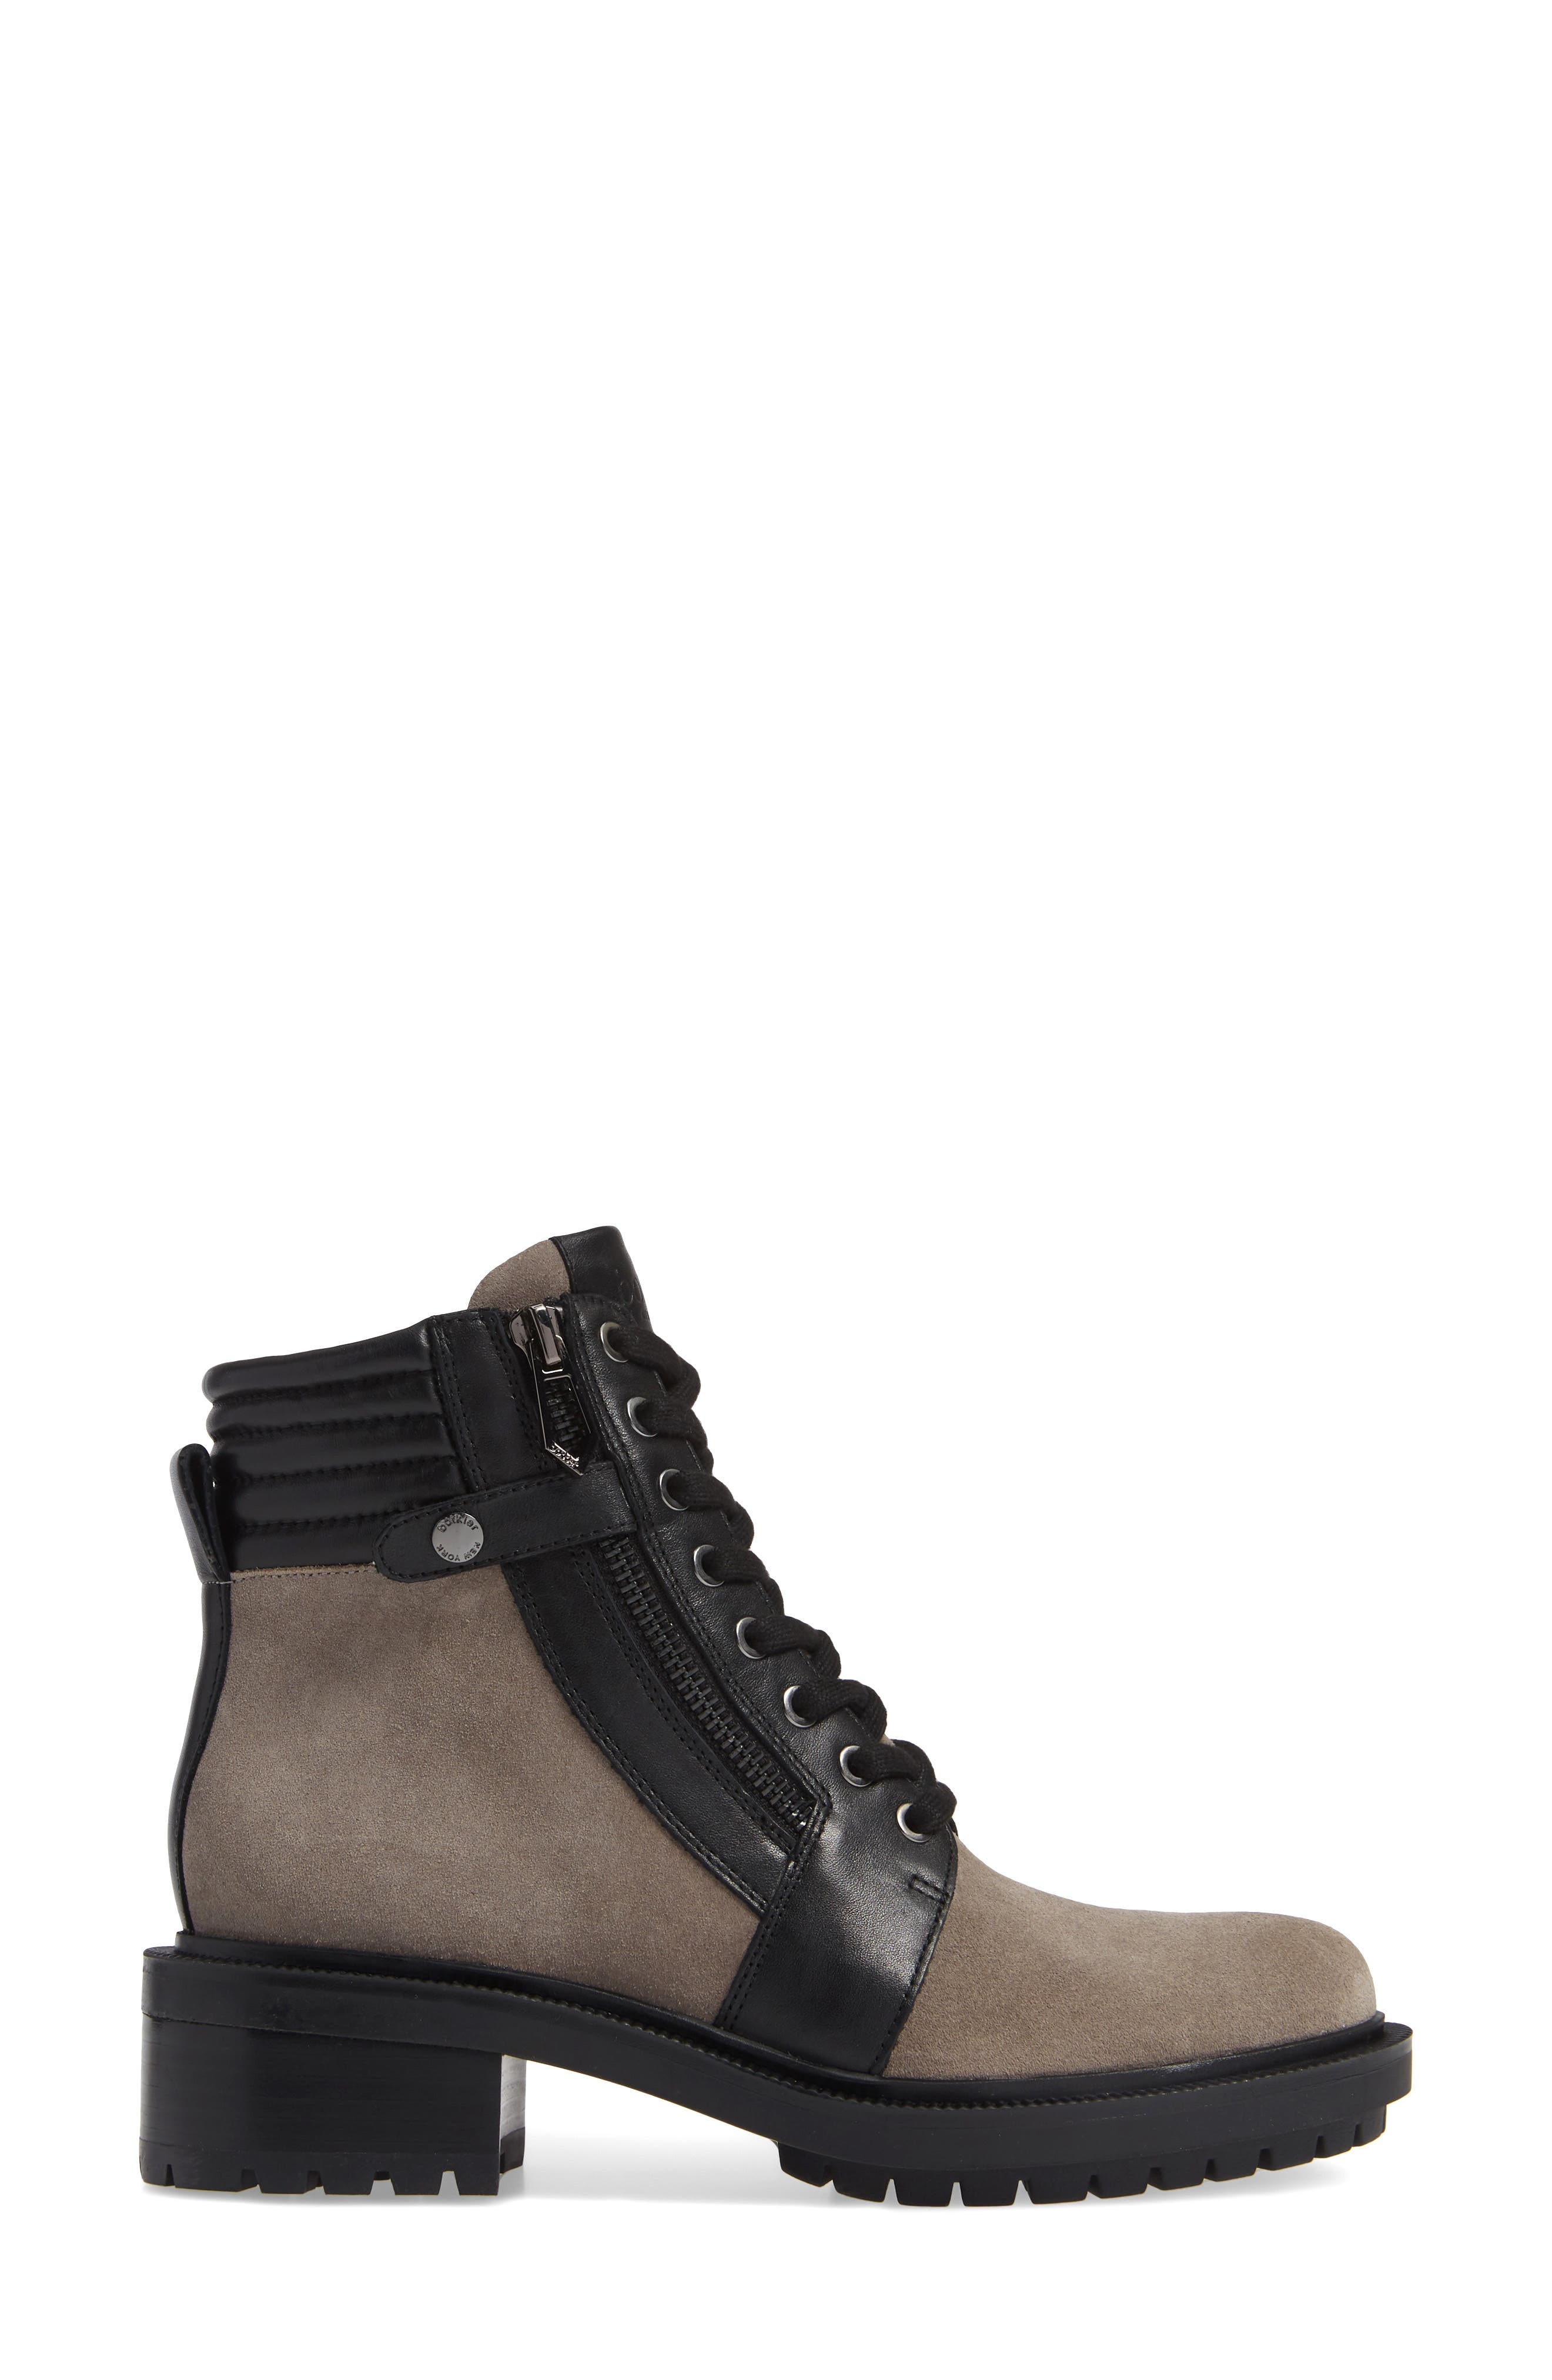 Moto Boot,                             Alternate thumbnail 3, color,                             WINTER GREY SUEDE